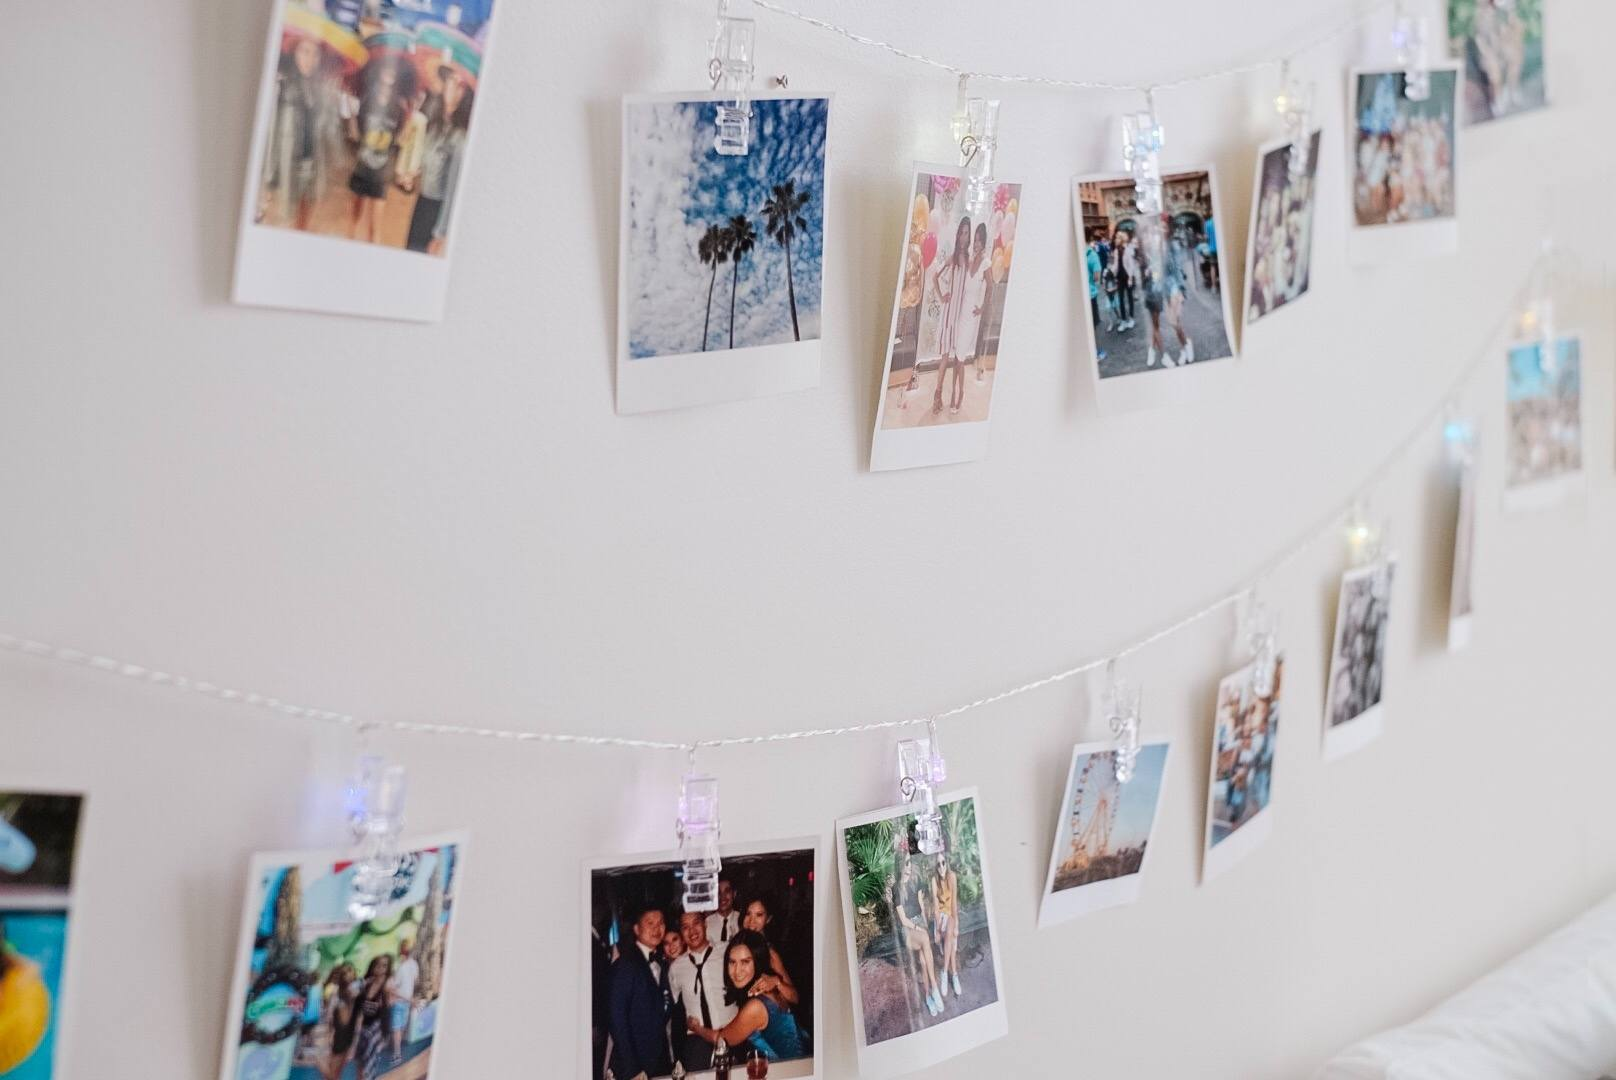 string lights with clothespins full of polaroid photos